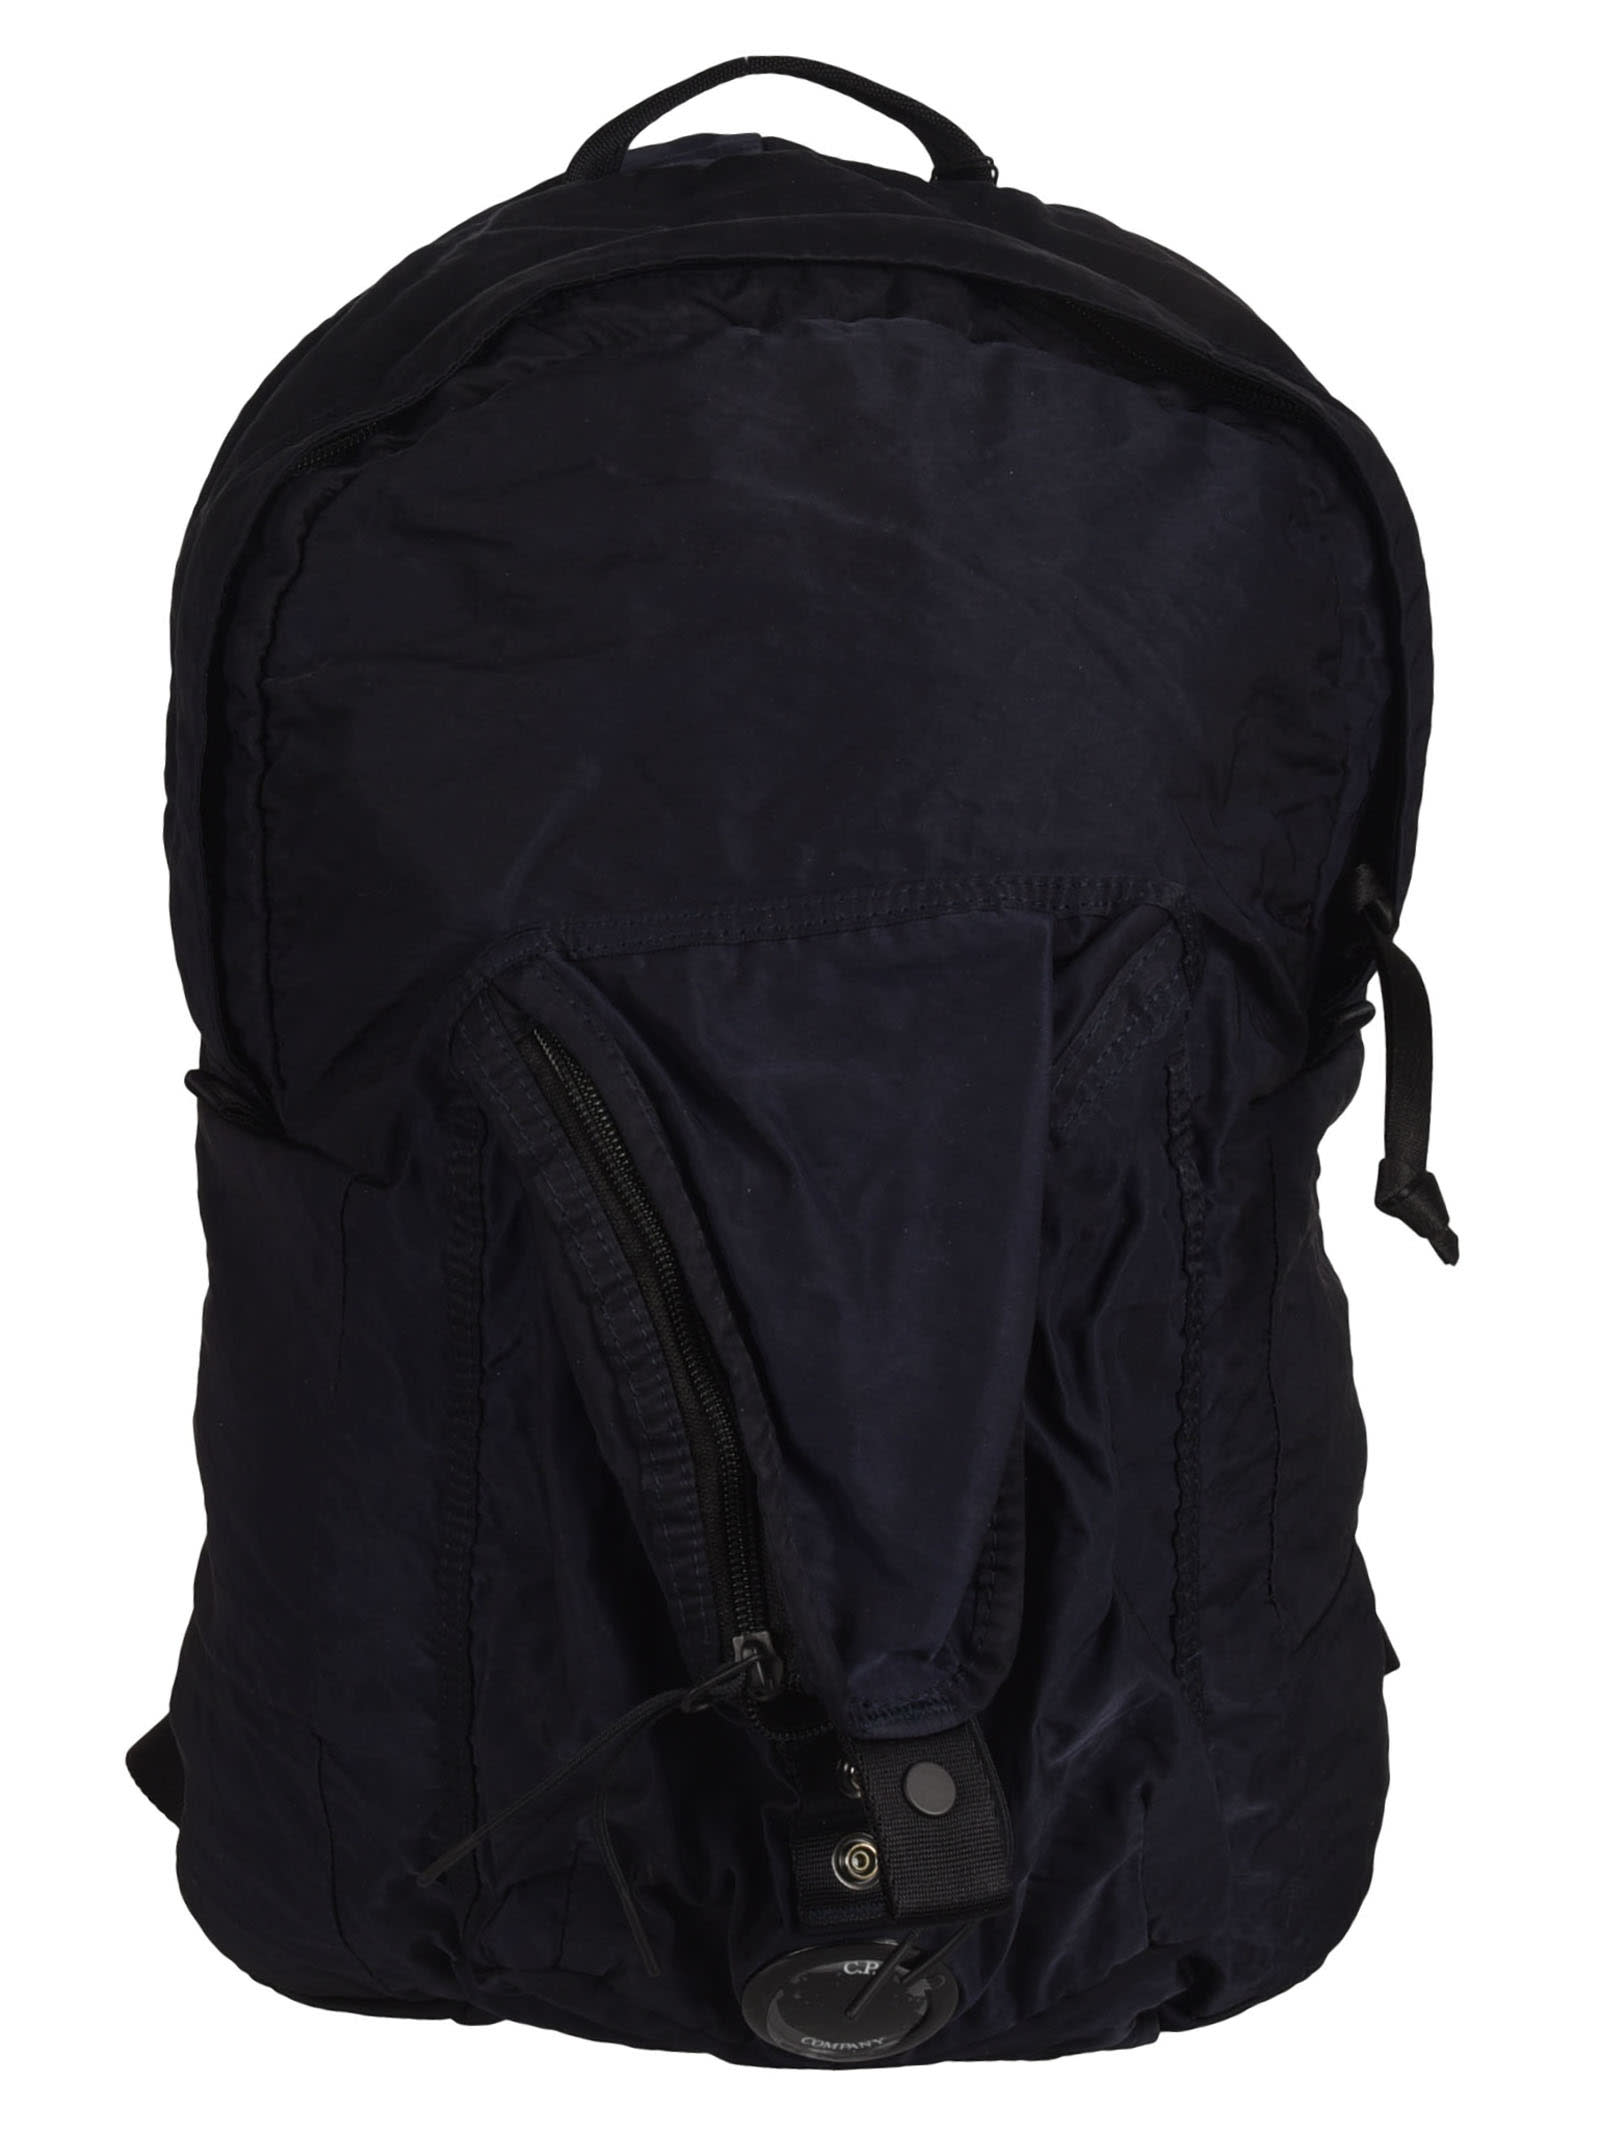 C.p. Company SNAP-LOCK STRAP DETAIL TOP ZIP TRAVEL BACKPACK